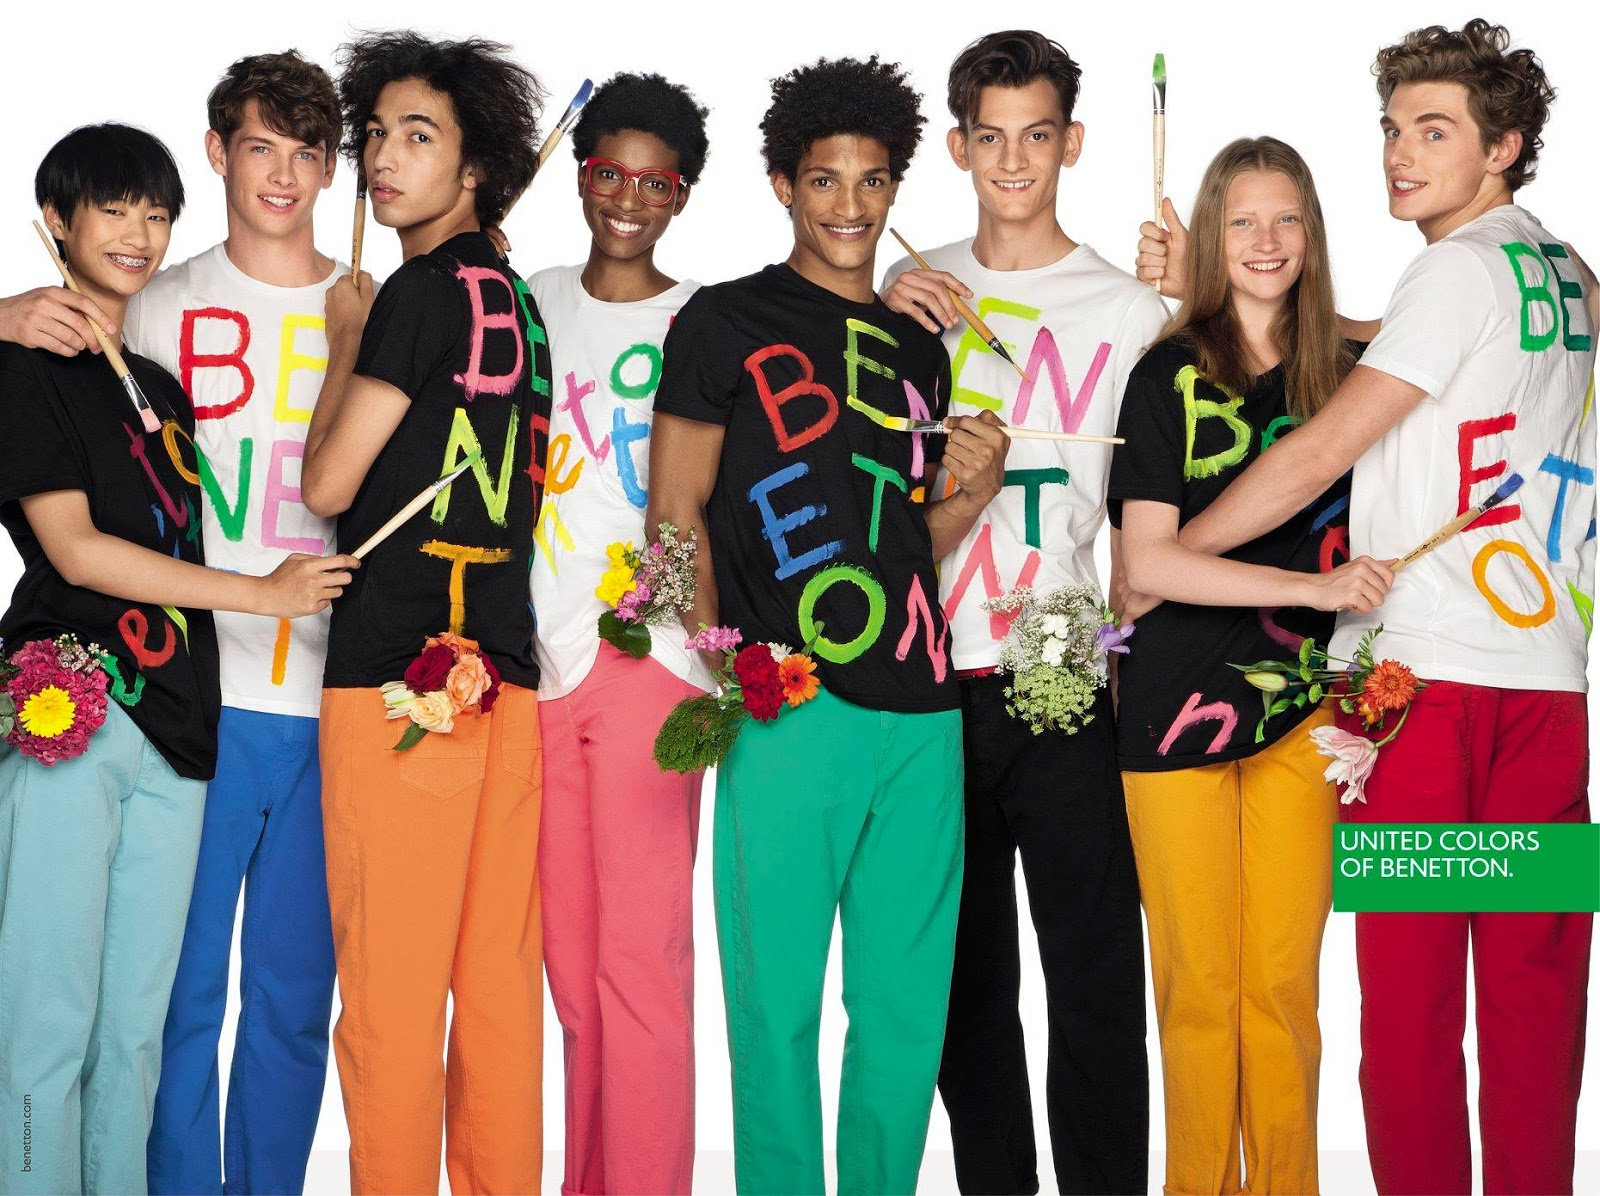 United colors of benetton spring summer 2018 campaign for Benetton we are colors